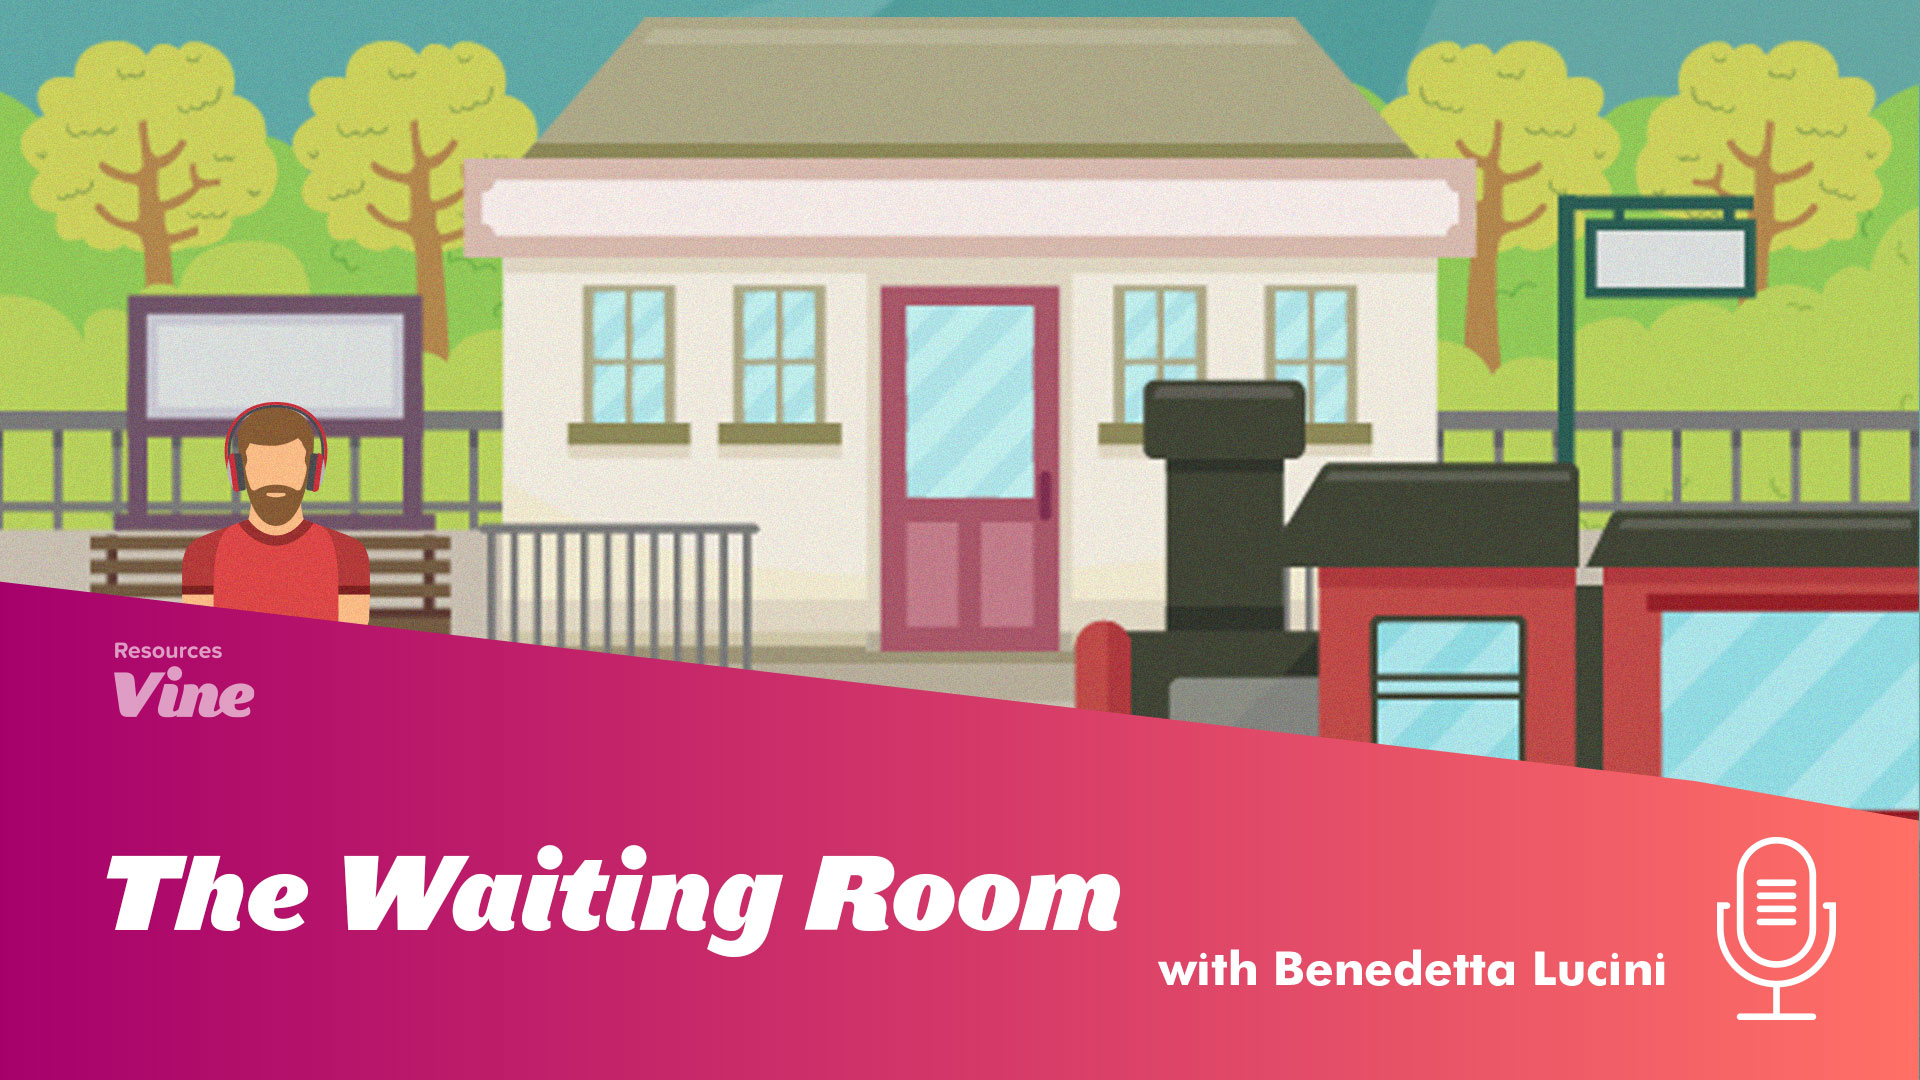 Thumbnail_The_Waiting_Room_Benedetta Lucini